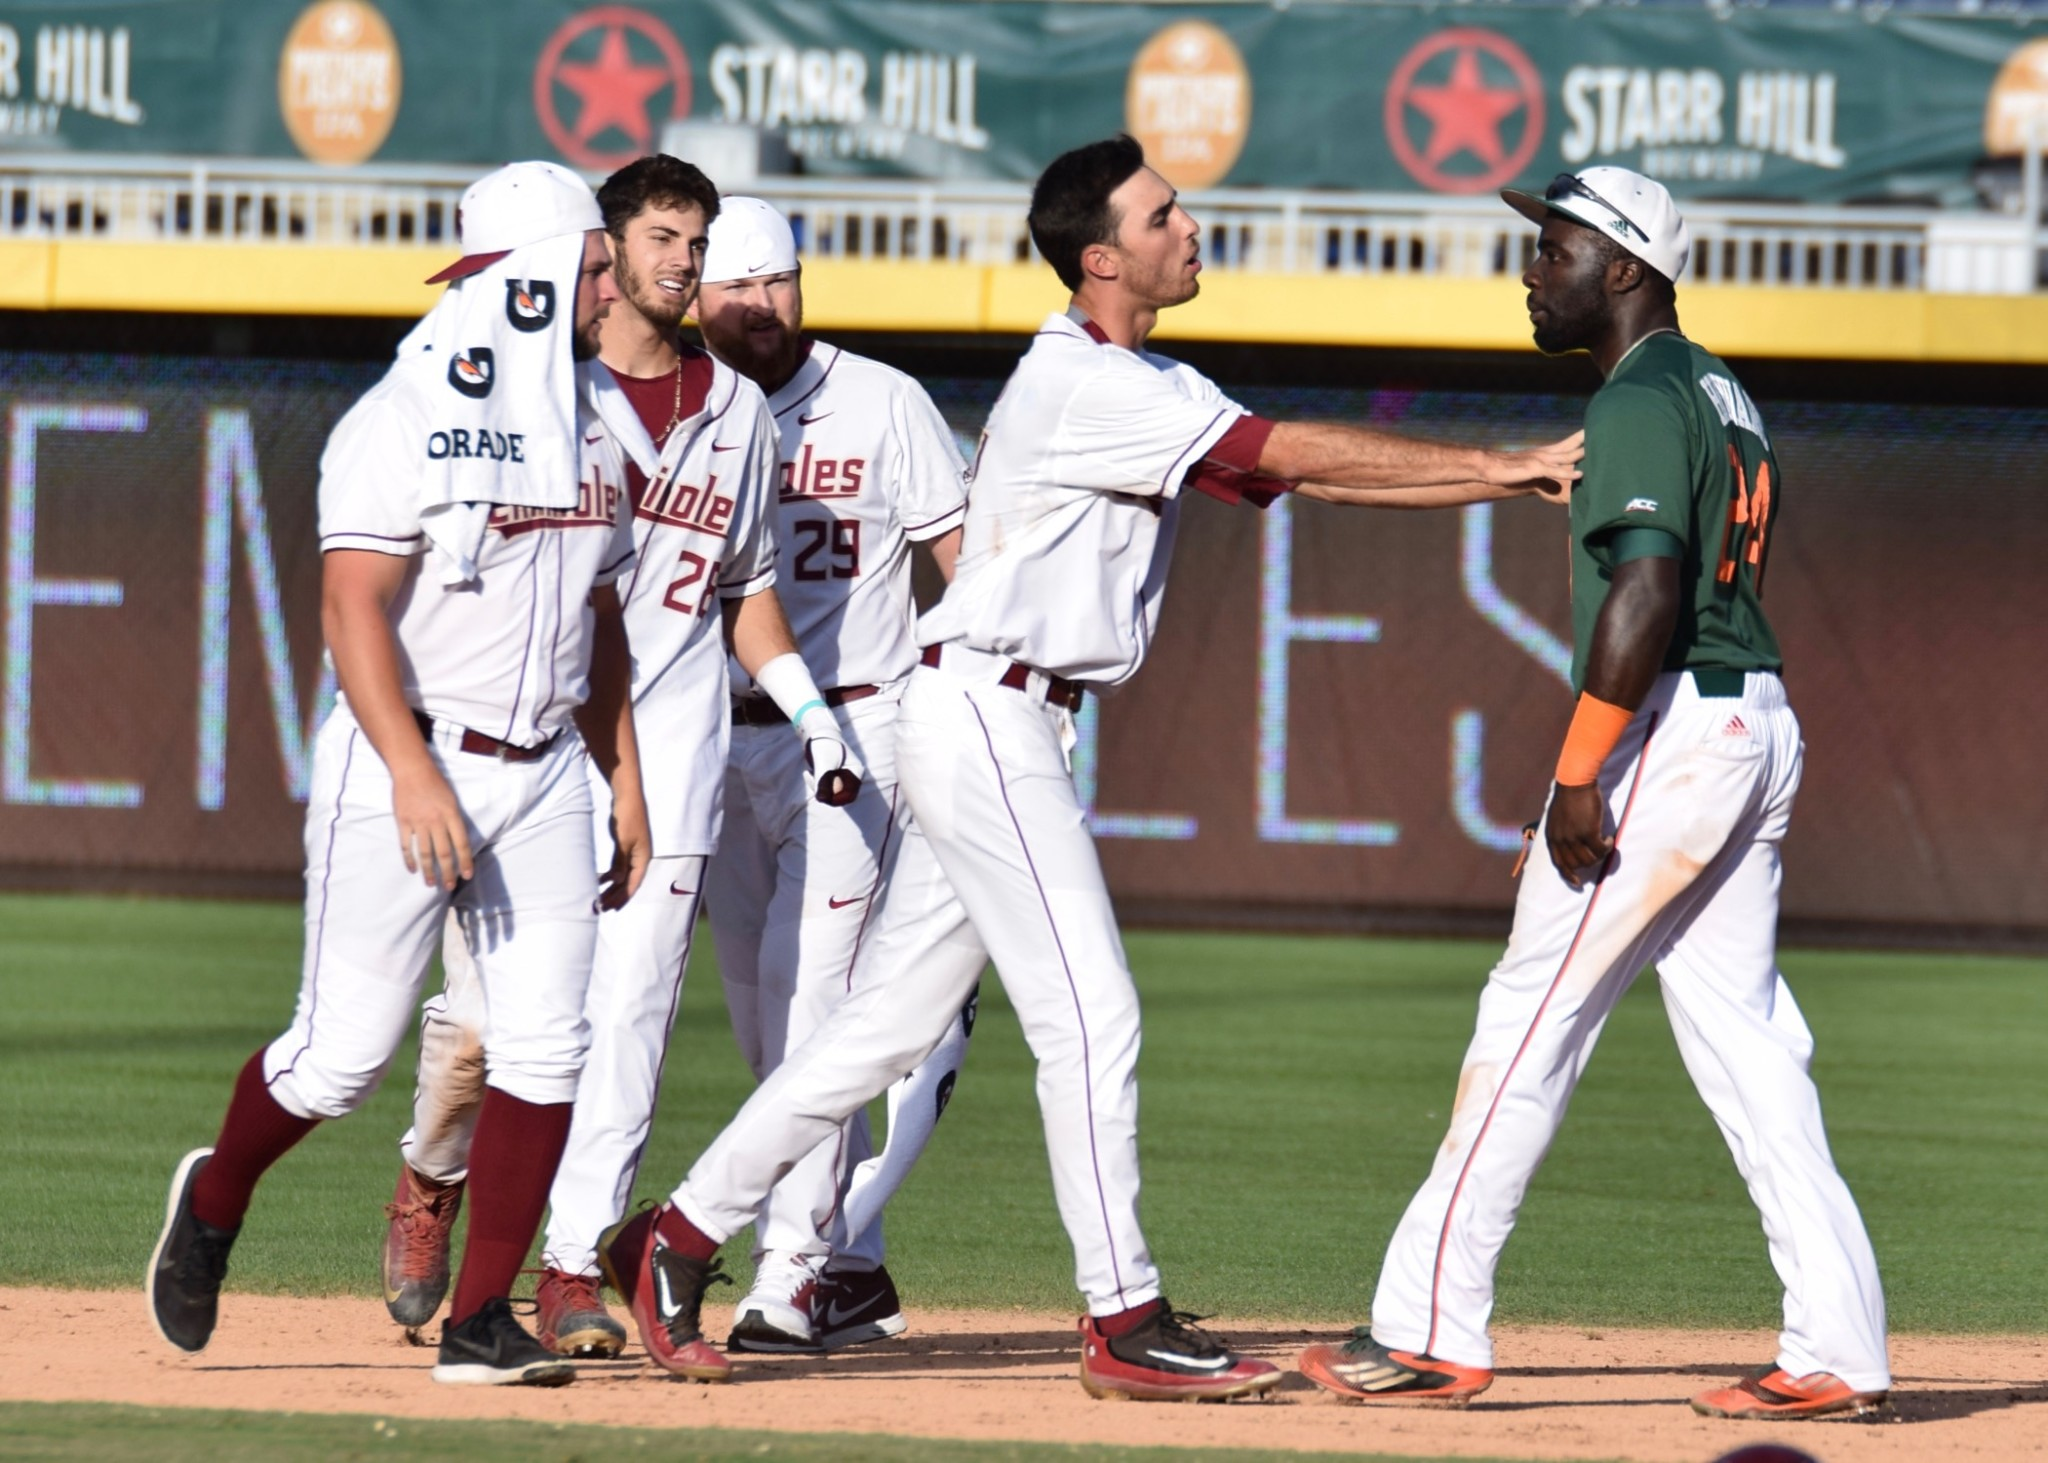 This picture was taken after the Seminoles walked it off against the Hurricanes in the ACC Championship game last year. There was a scuffle that broke out just before the celebration.